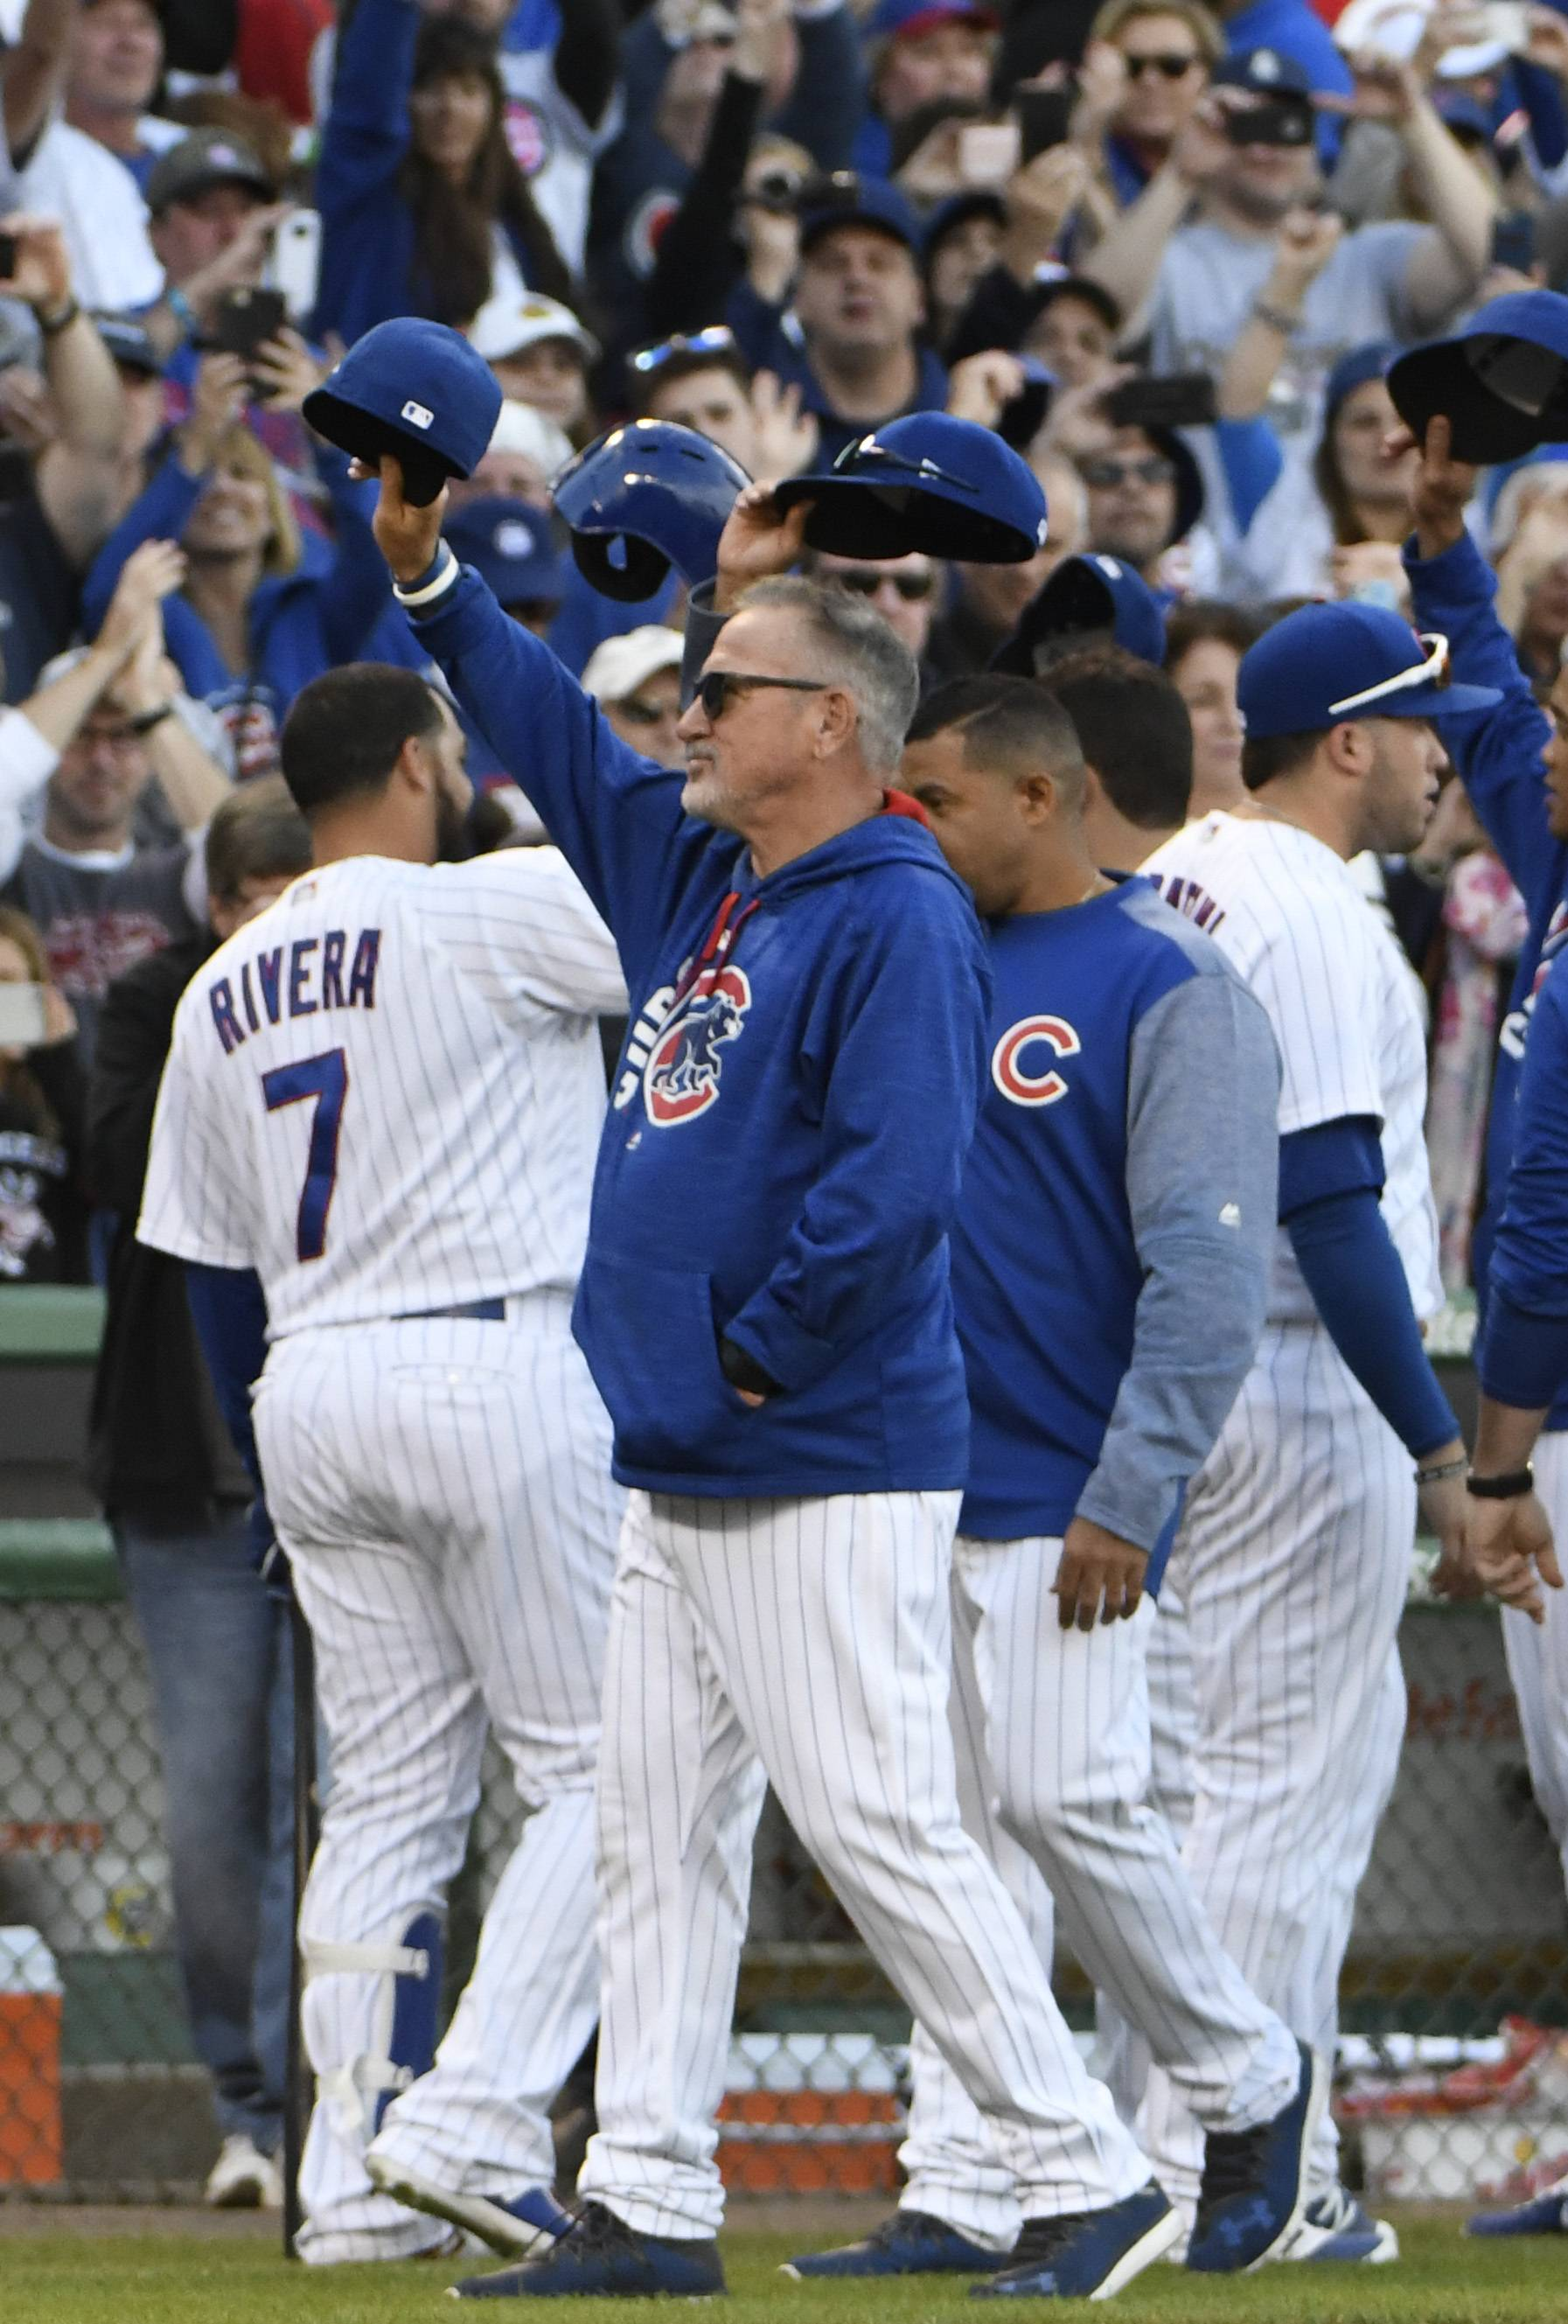 Chicago Cubs manager Joe Maddon, center, acknowledges the fans after the last regular season baseball game against the Cincinnati Reds, Sunday, Oct. 1, 2017, in Chicago. The Reds defeated the Cubs 3-1.